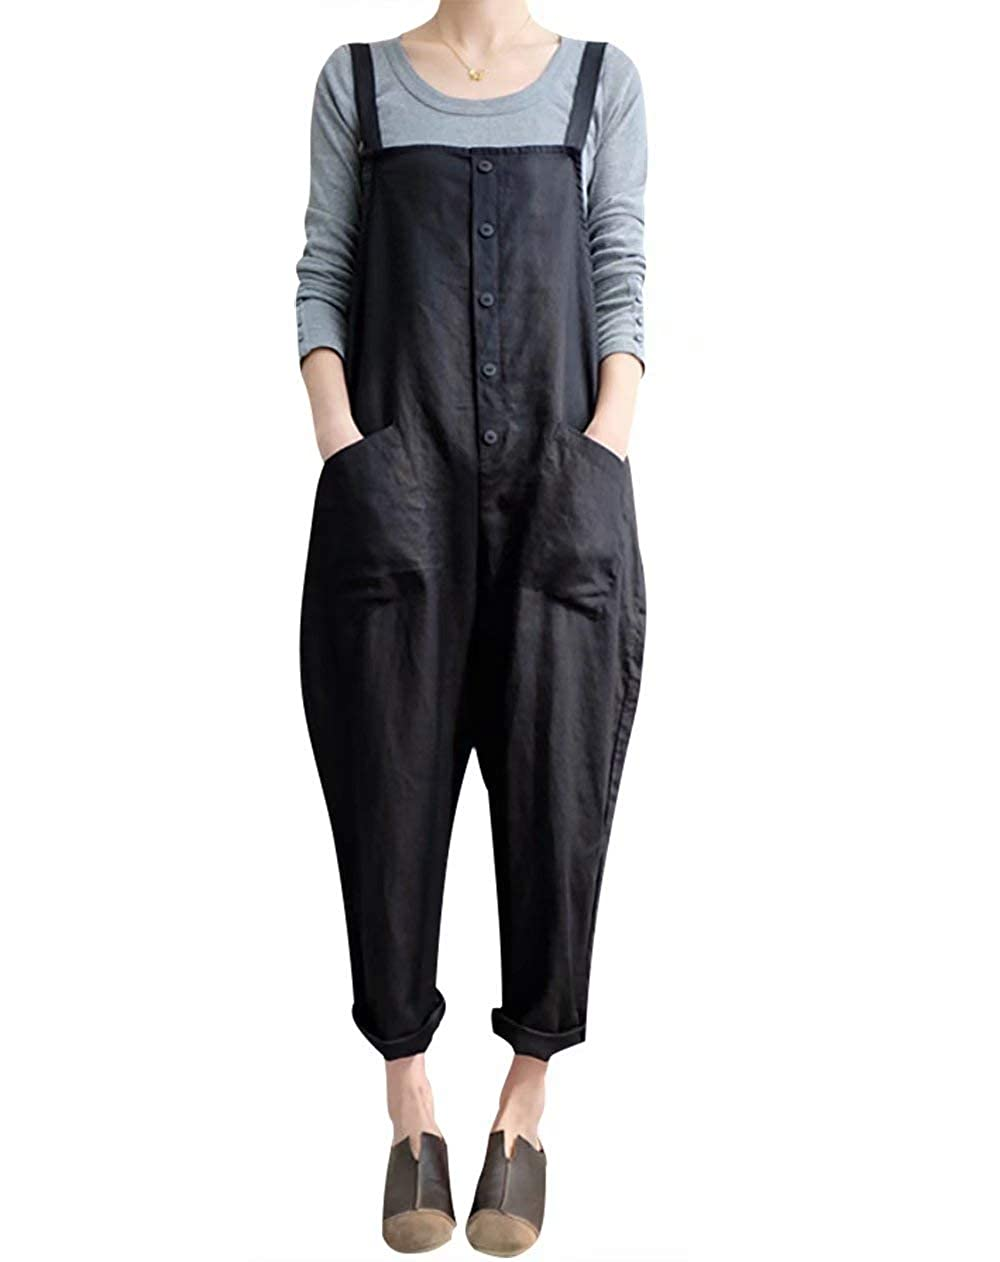 MYHALF Womens Overalls Casual Harem Pants Wide Leg Low Crotch Loose Trousers